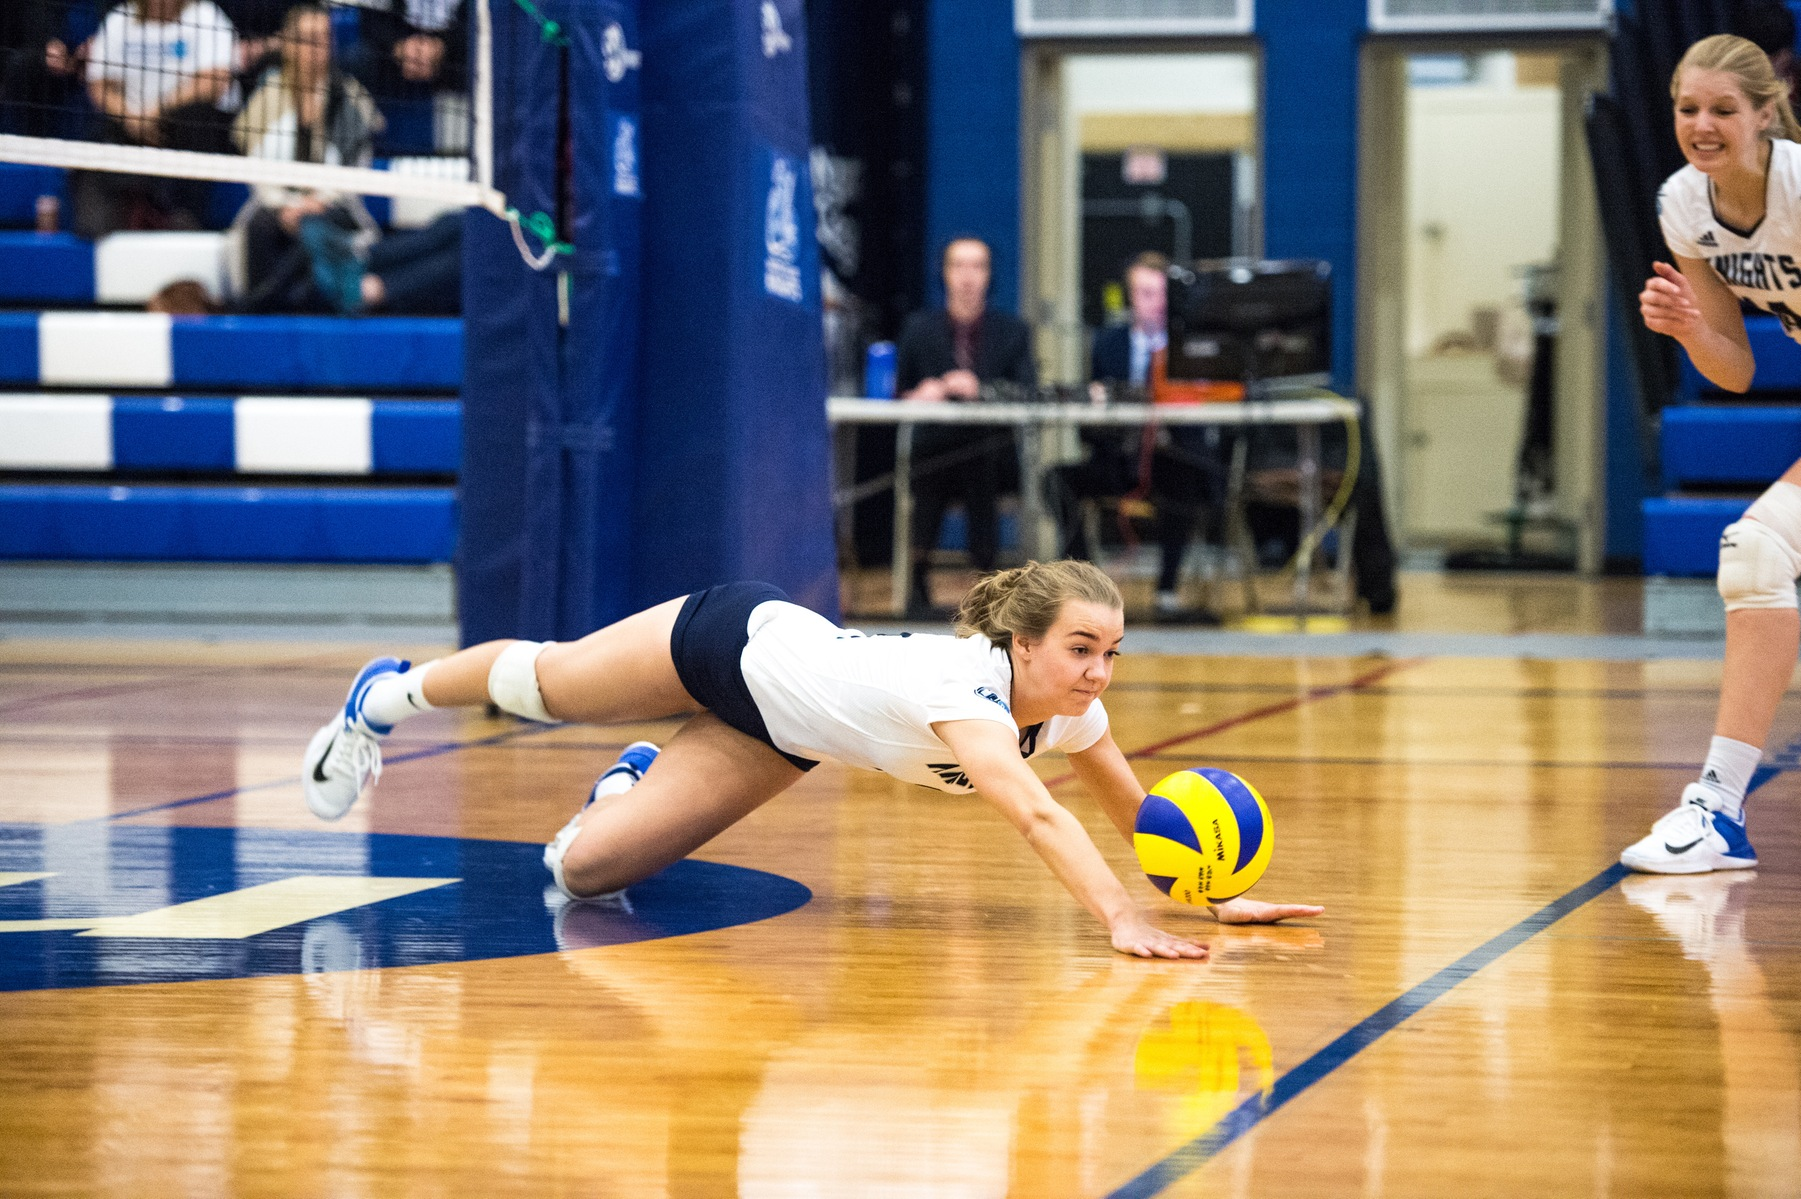 RECAP: Women's Volleyball impressive in home court win over Sheridan